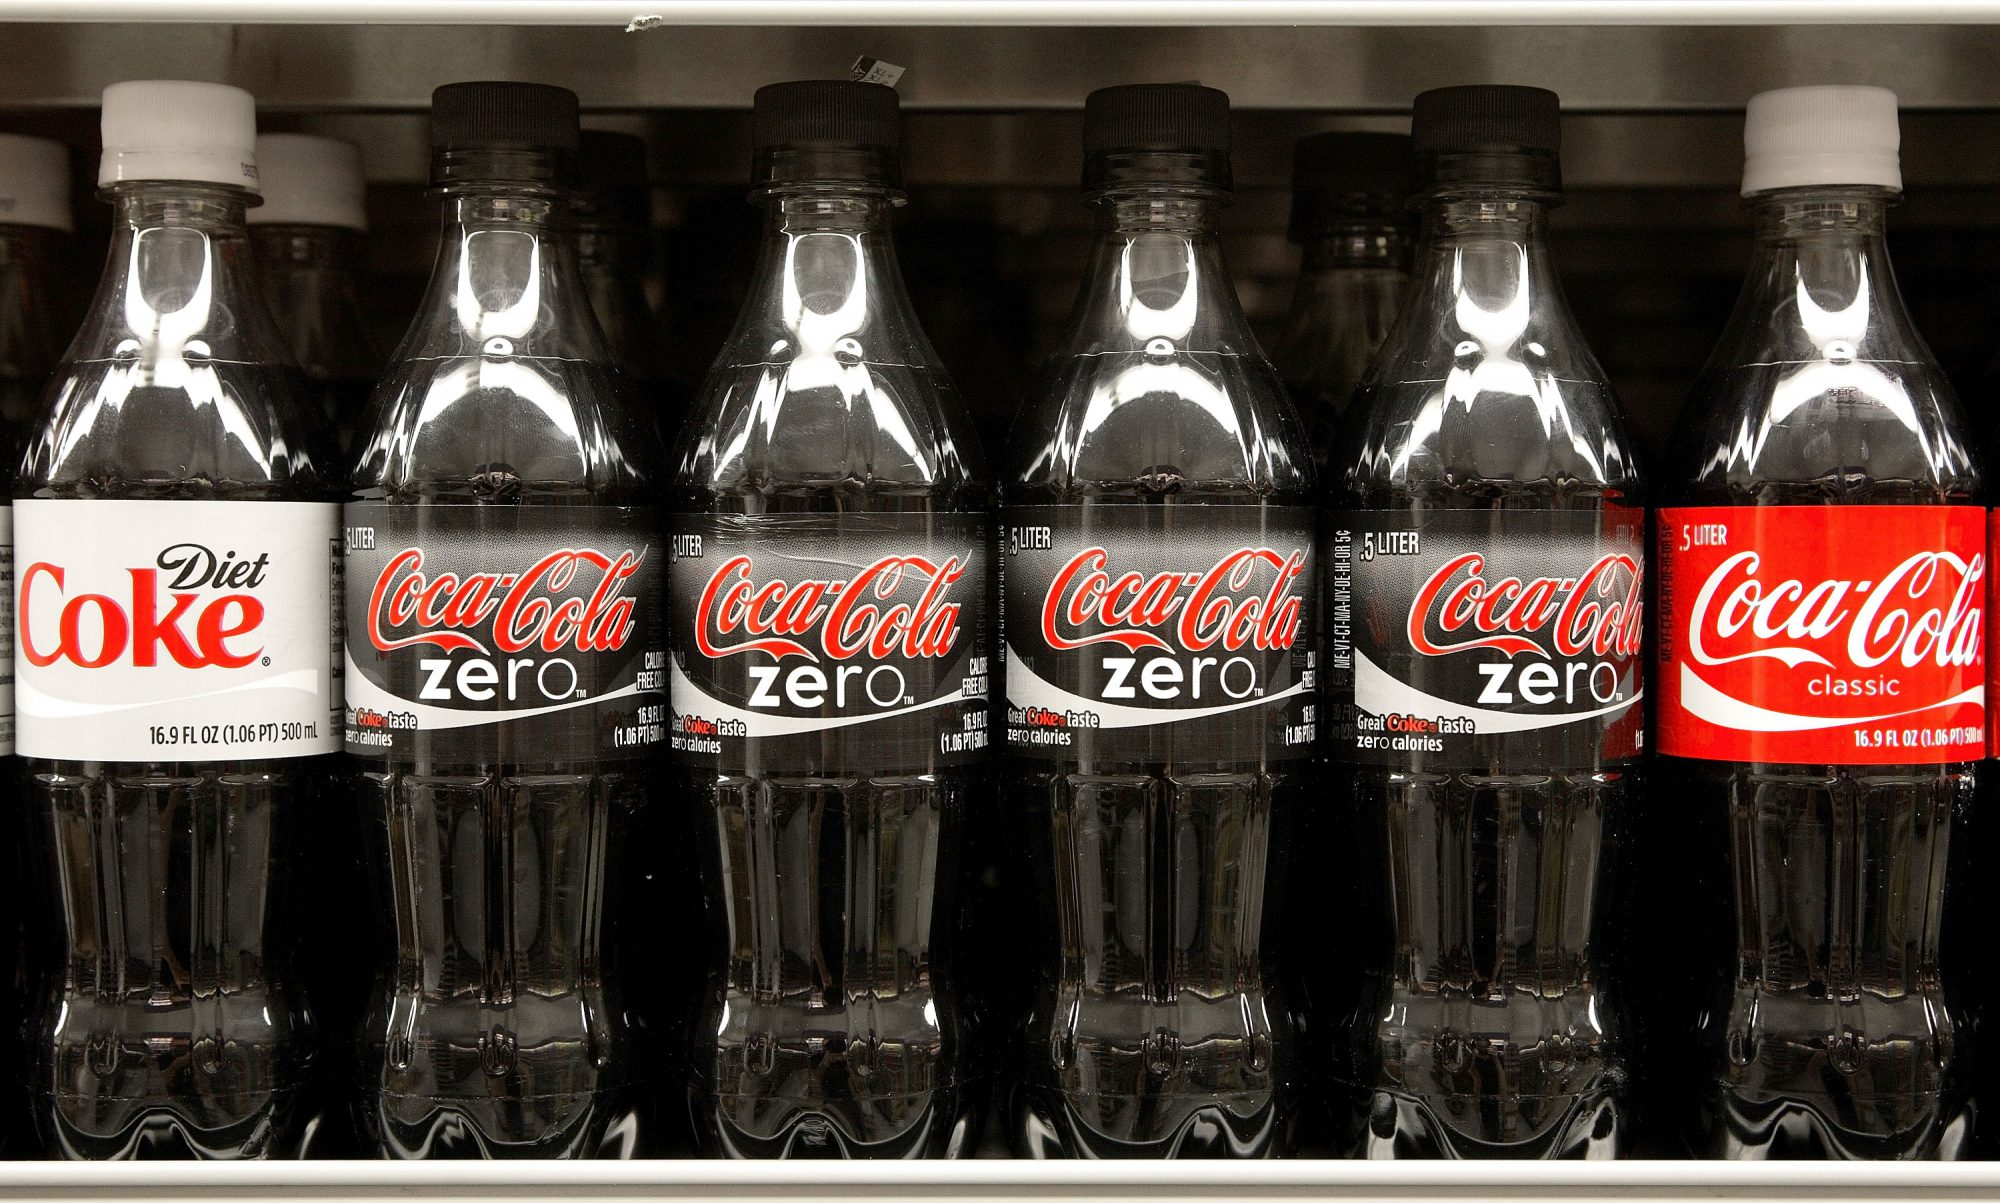 Coke Zero is being replaced